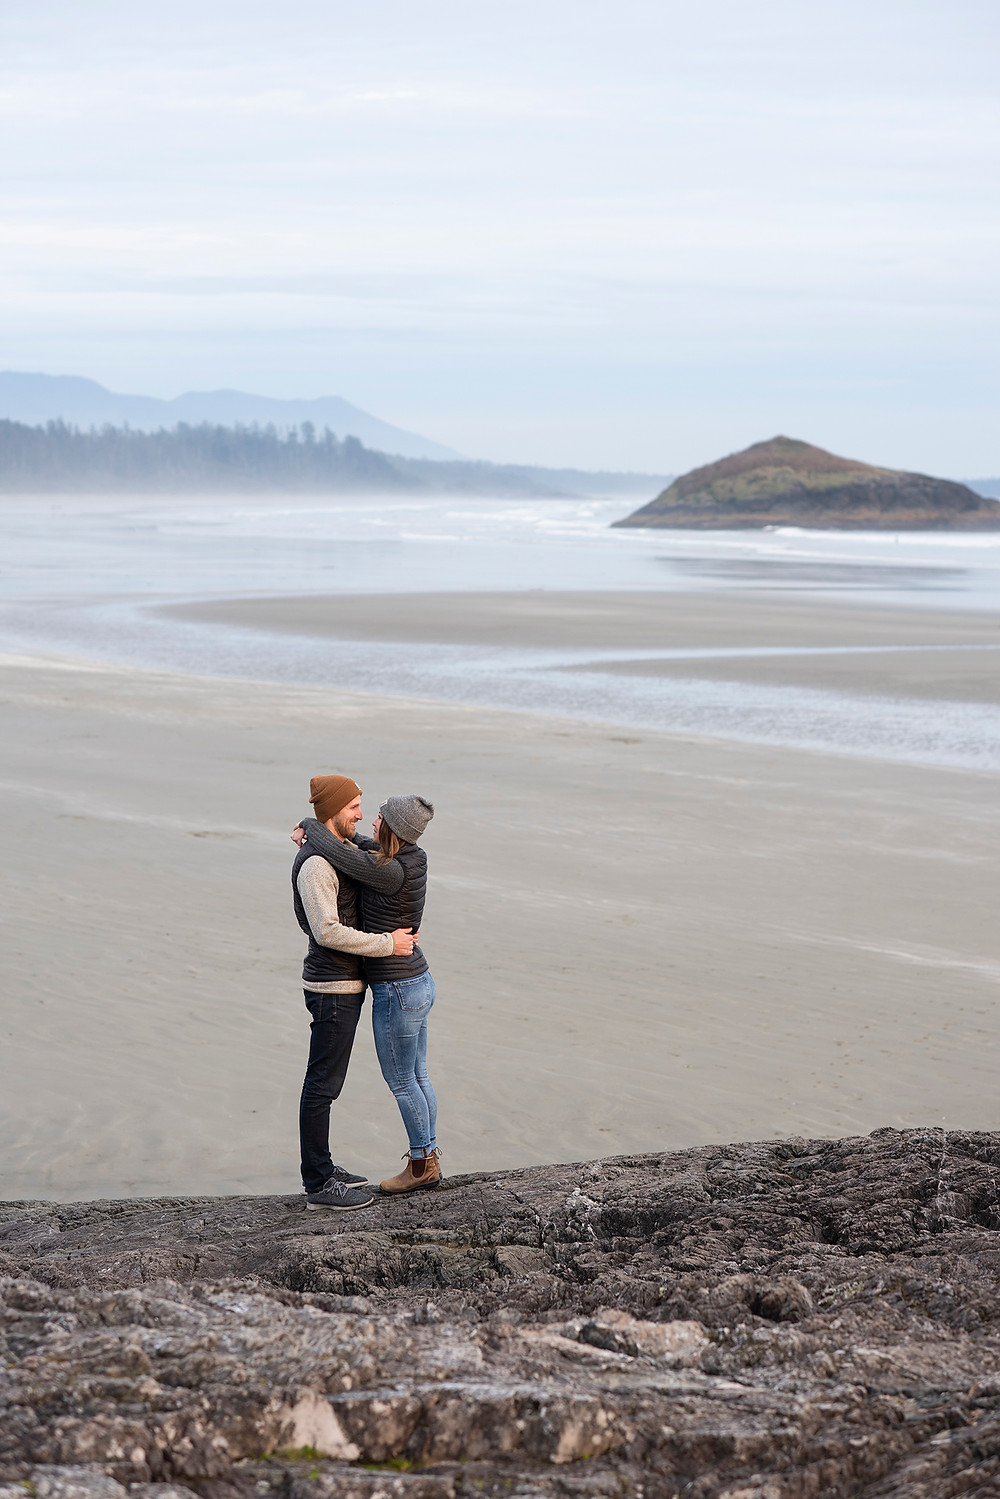 Man and woman embrace during engagement photo session on the beach in Tofino. Photographed by Kaitlyn Shea.